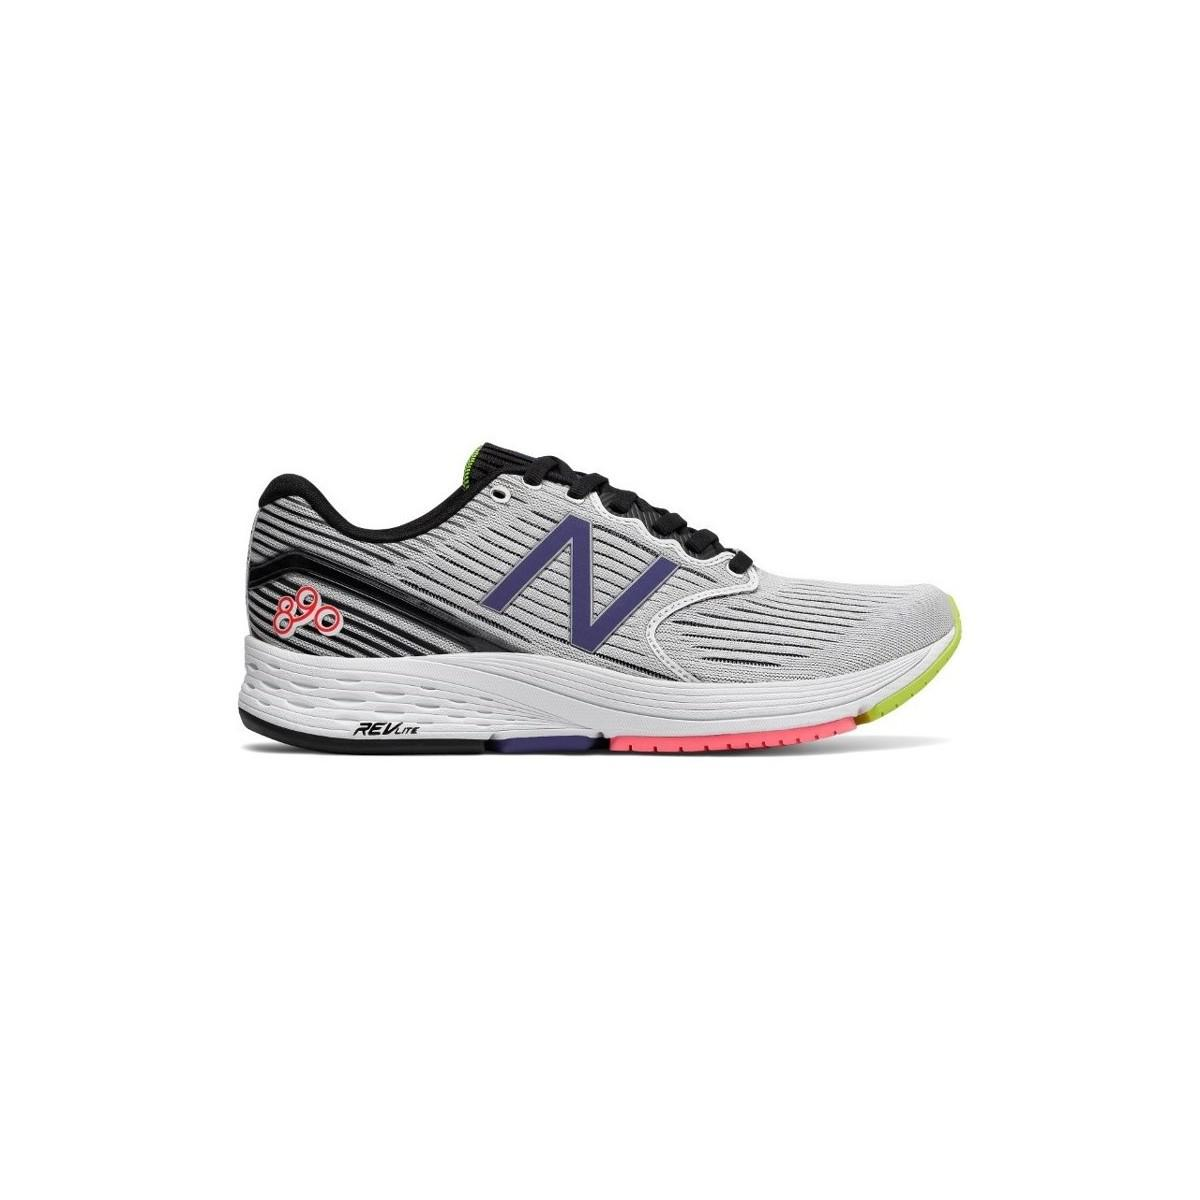 New Balance Wthierg women's Shoes (Trainers) in View Cheap Price VYWfZb2